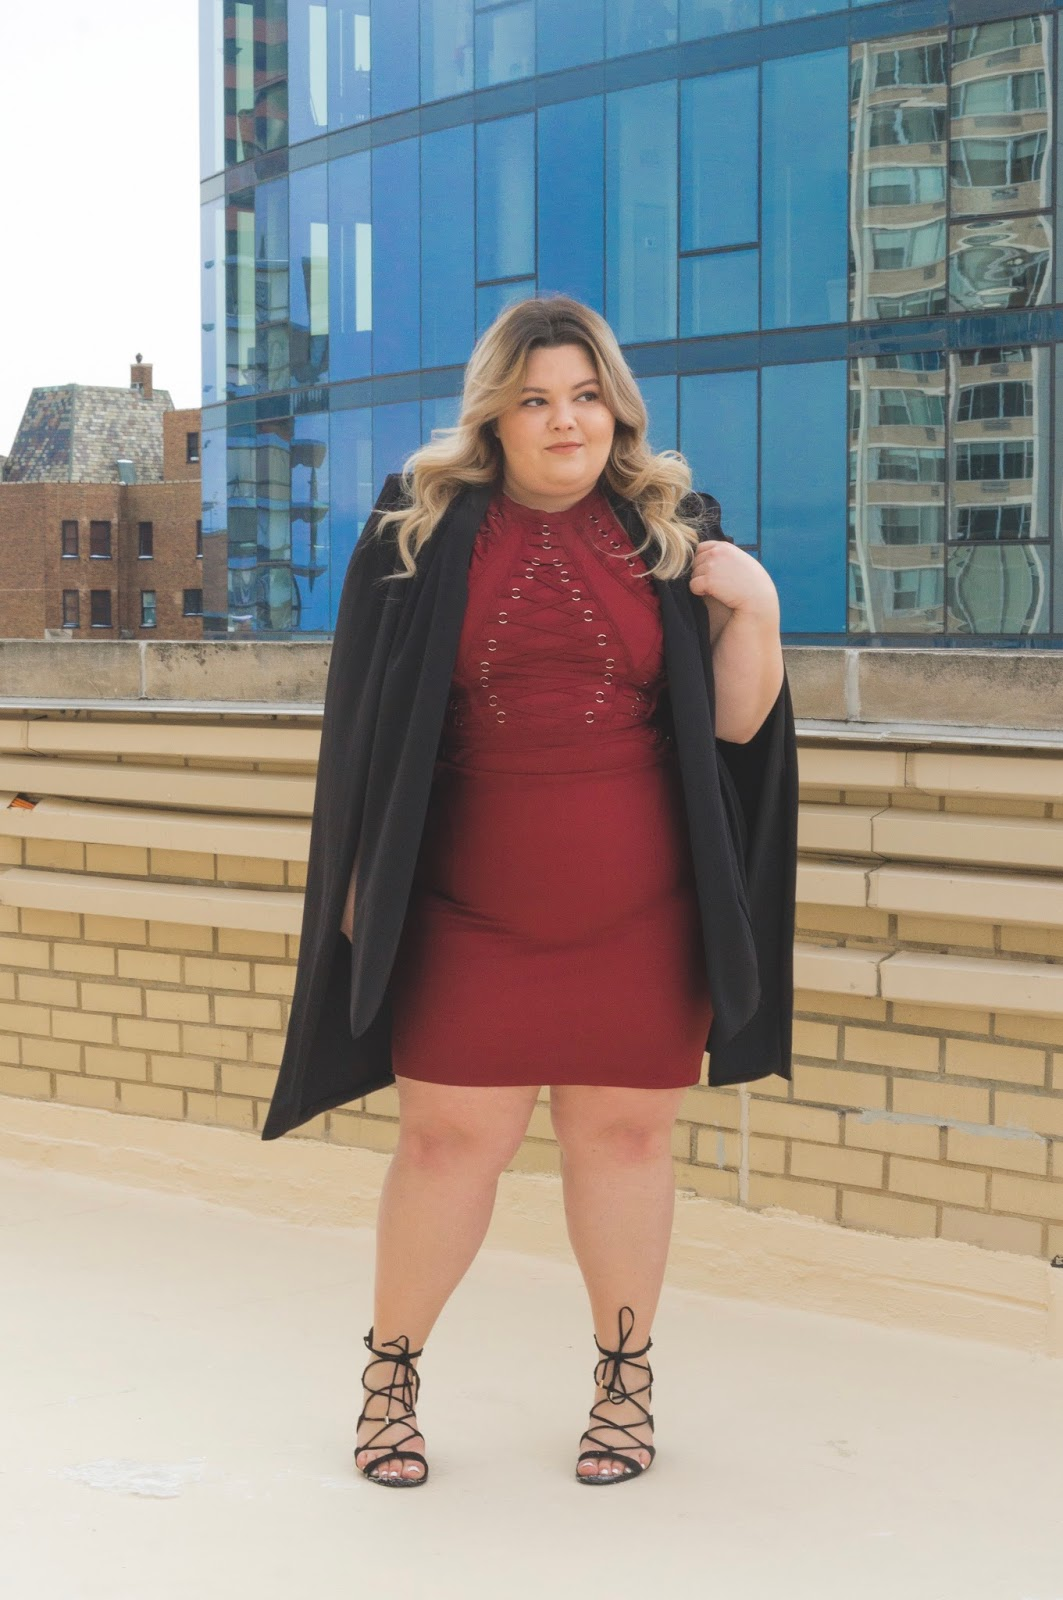 natalie craig, natalie in the city, Chicago plus size fashion blogger, fashion blogger, outfit review, fashion nova, fashion nova curve, Chicago plus size model, plus size body con dress, plus size bandage dress, lace up trend, affordable plus size fashion, off your beauty standards, embrace my curves, plus model mag, skorch magazine